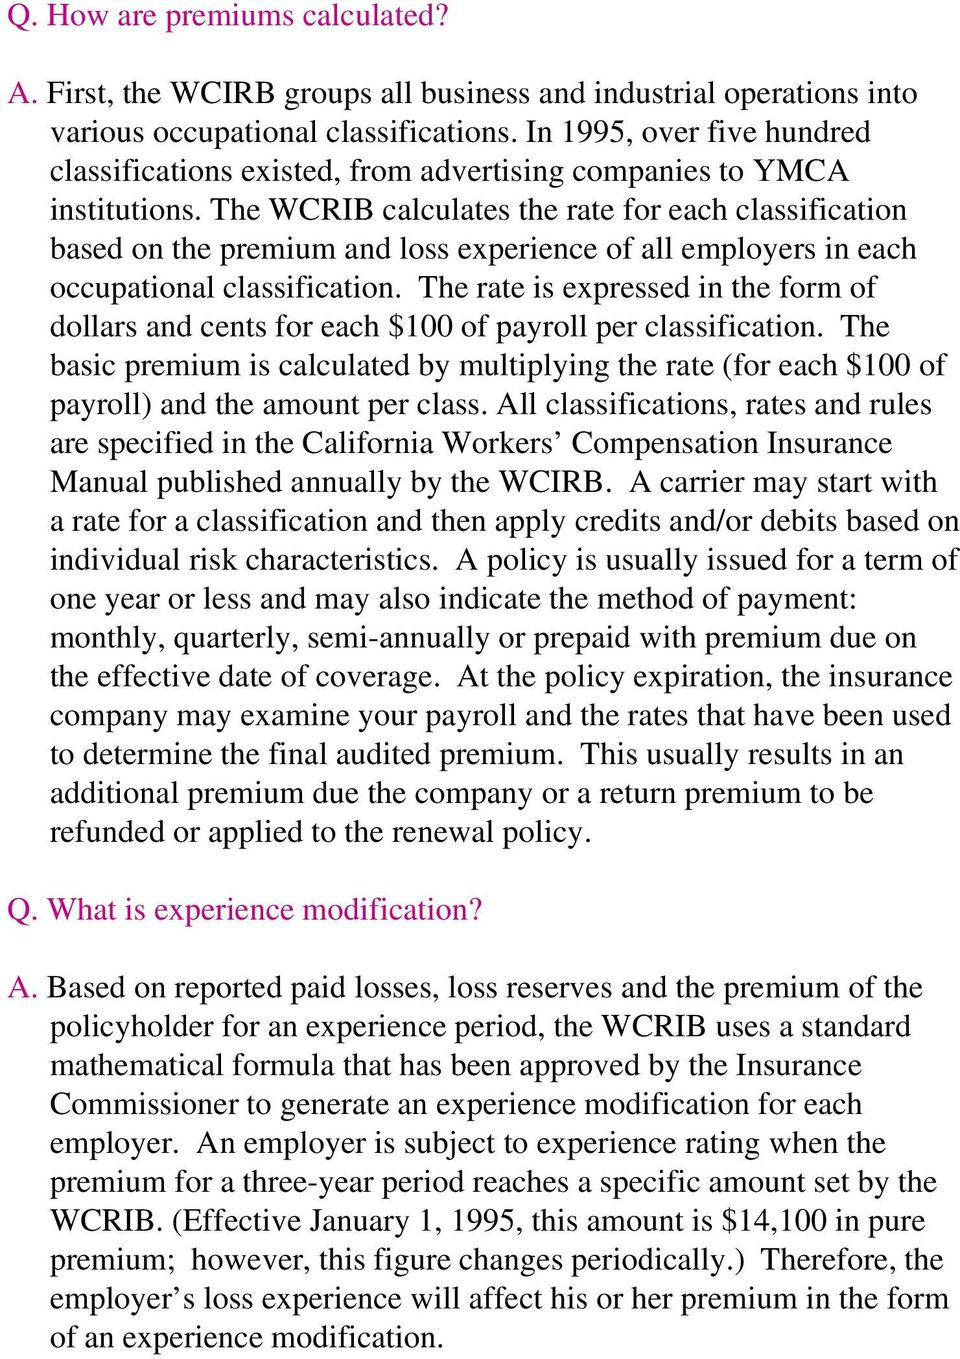 The WCRIB calculates the rate for each classification based on the premium and loss experience of all employers in each occupational classification.